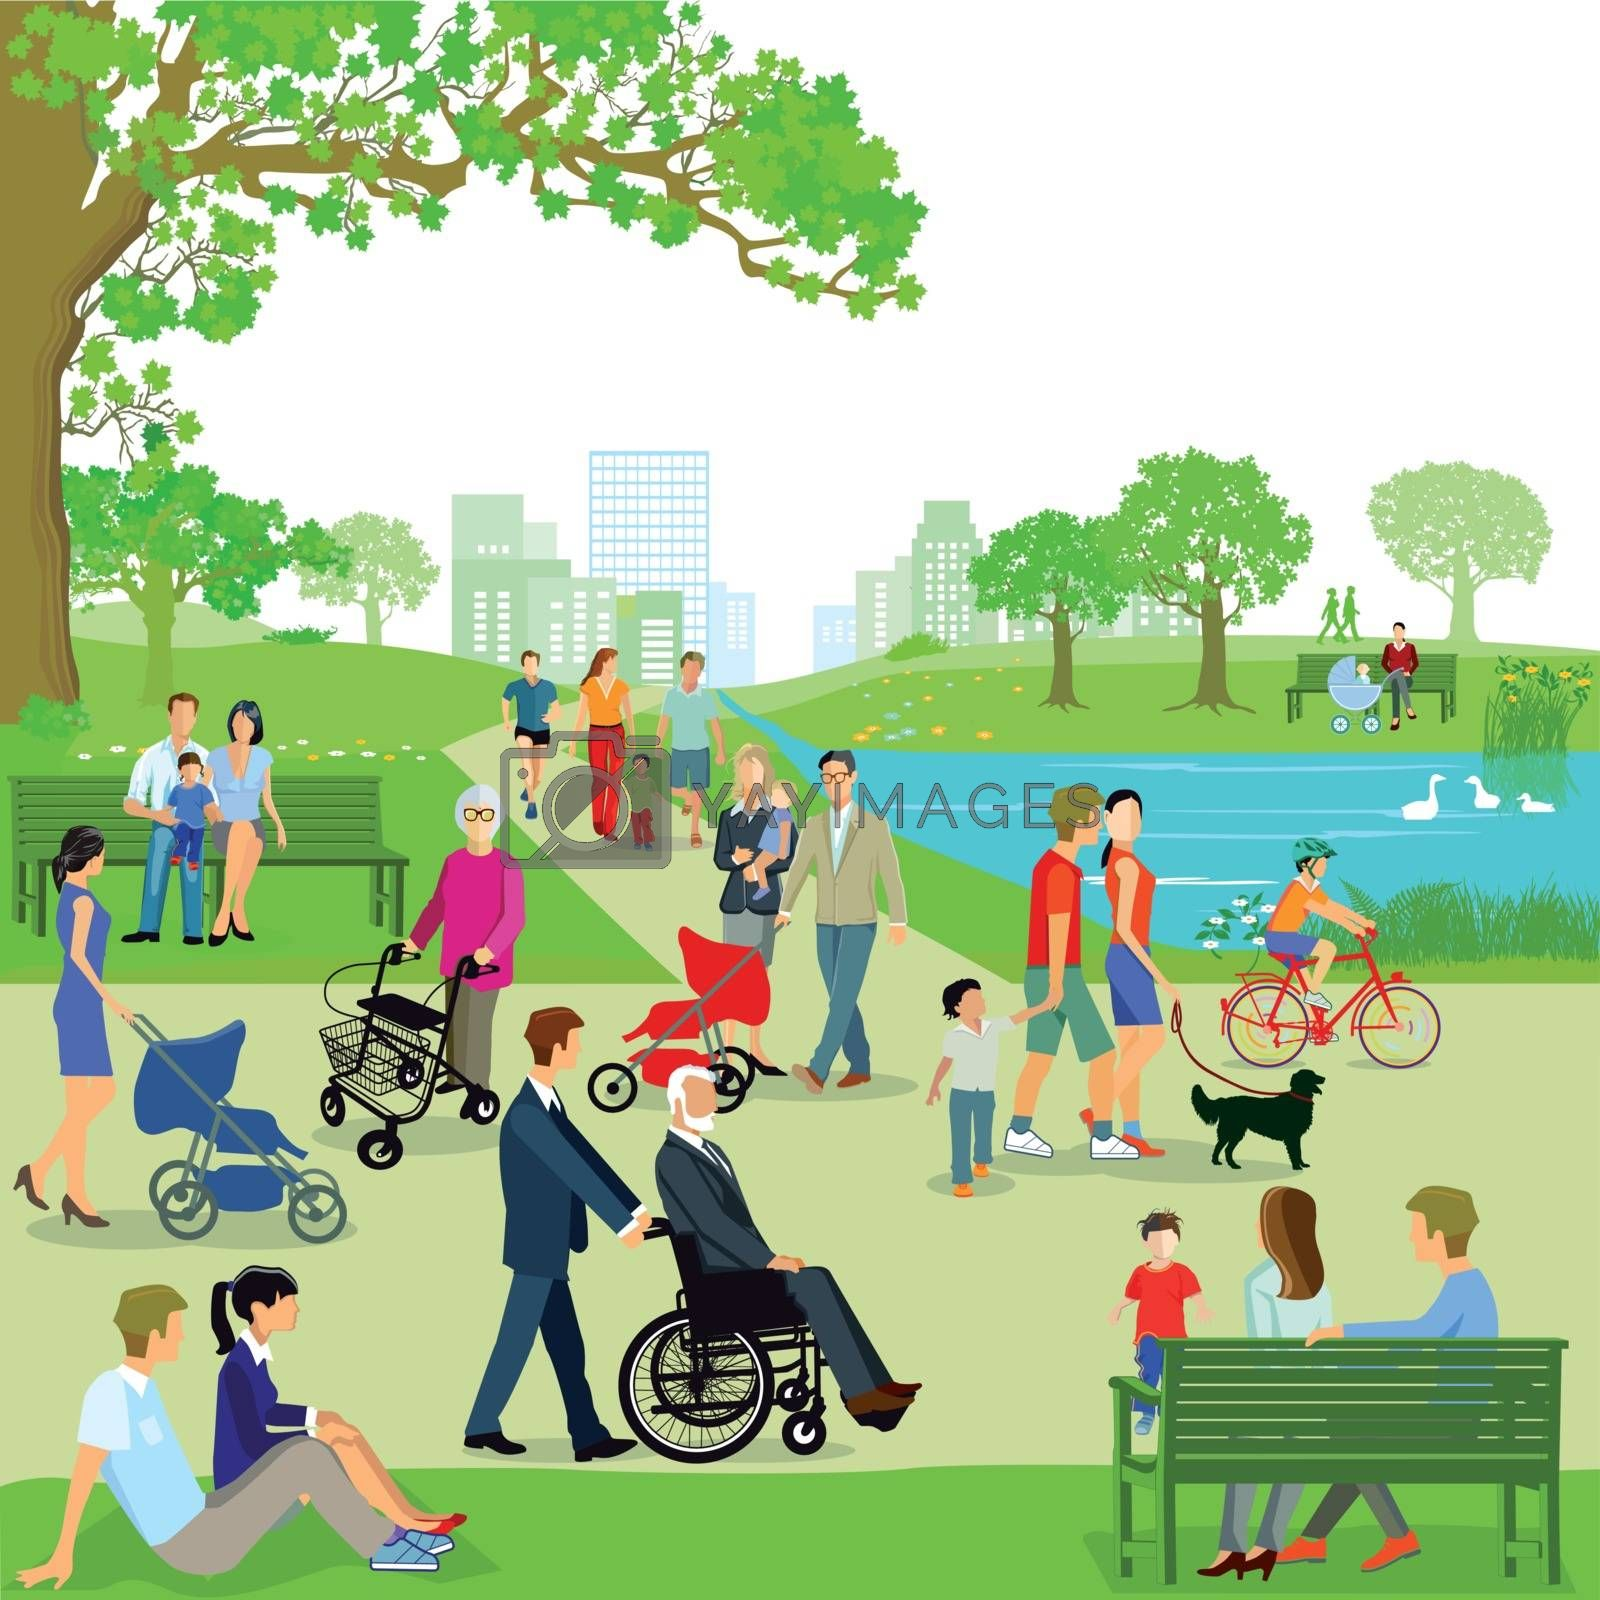 Leisure time of families in the park, illustration